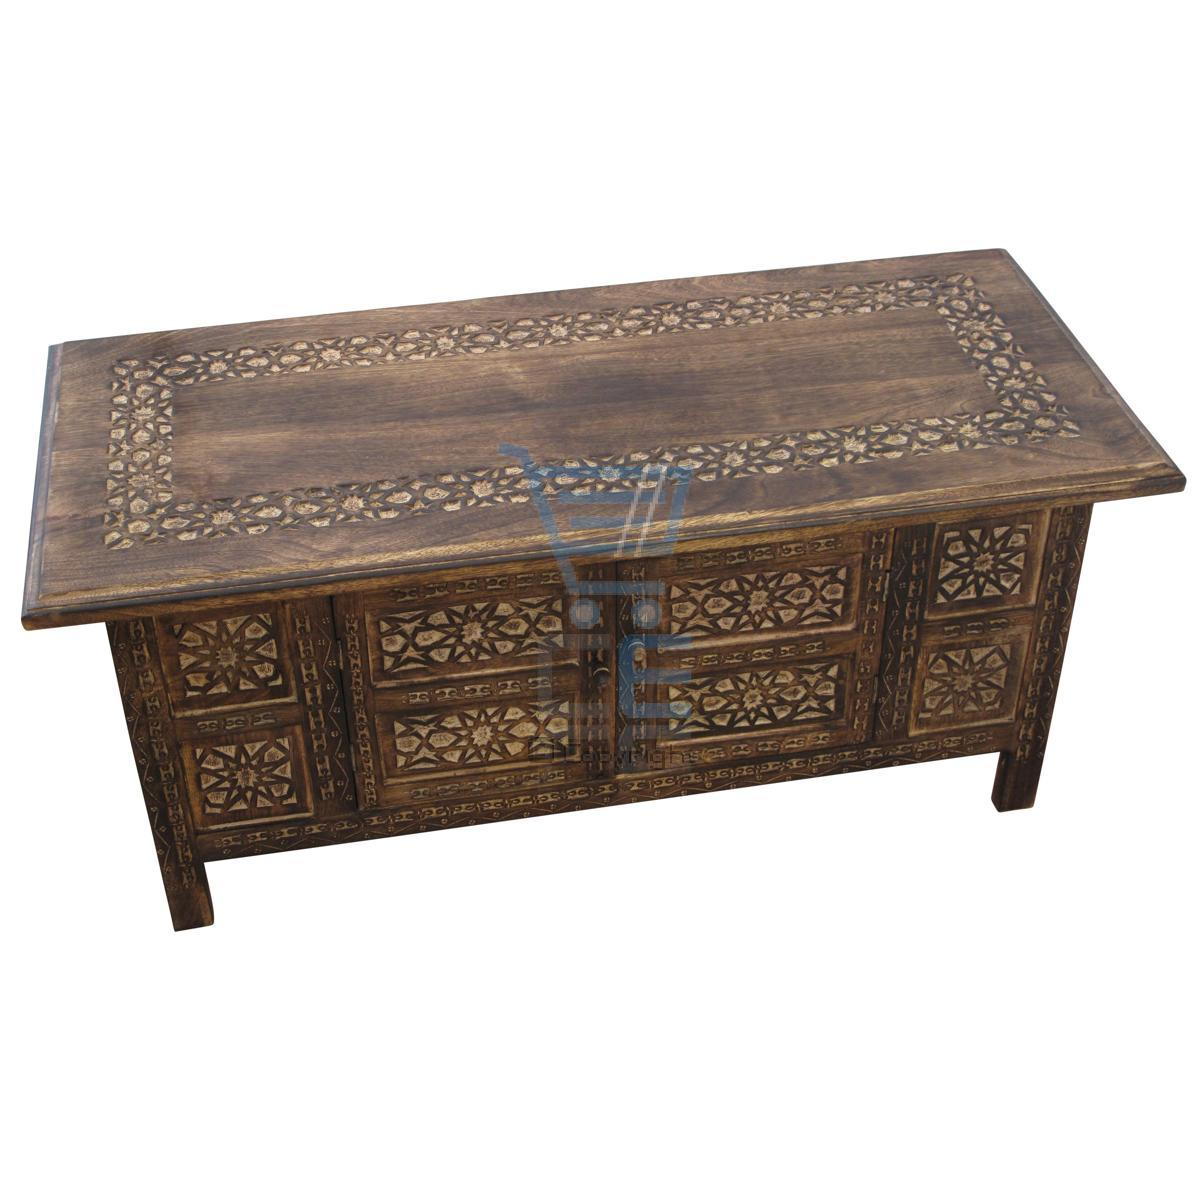 Mango wood coffee table with storage - Mango Wood Coffee Table With Storage Rectangle Coffee Table Moroccan Style Carving Storage Compartment Mango Wood With